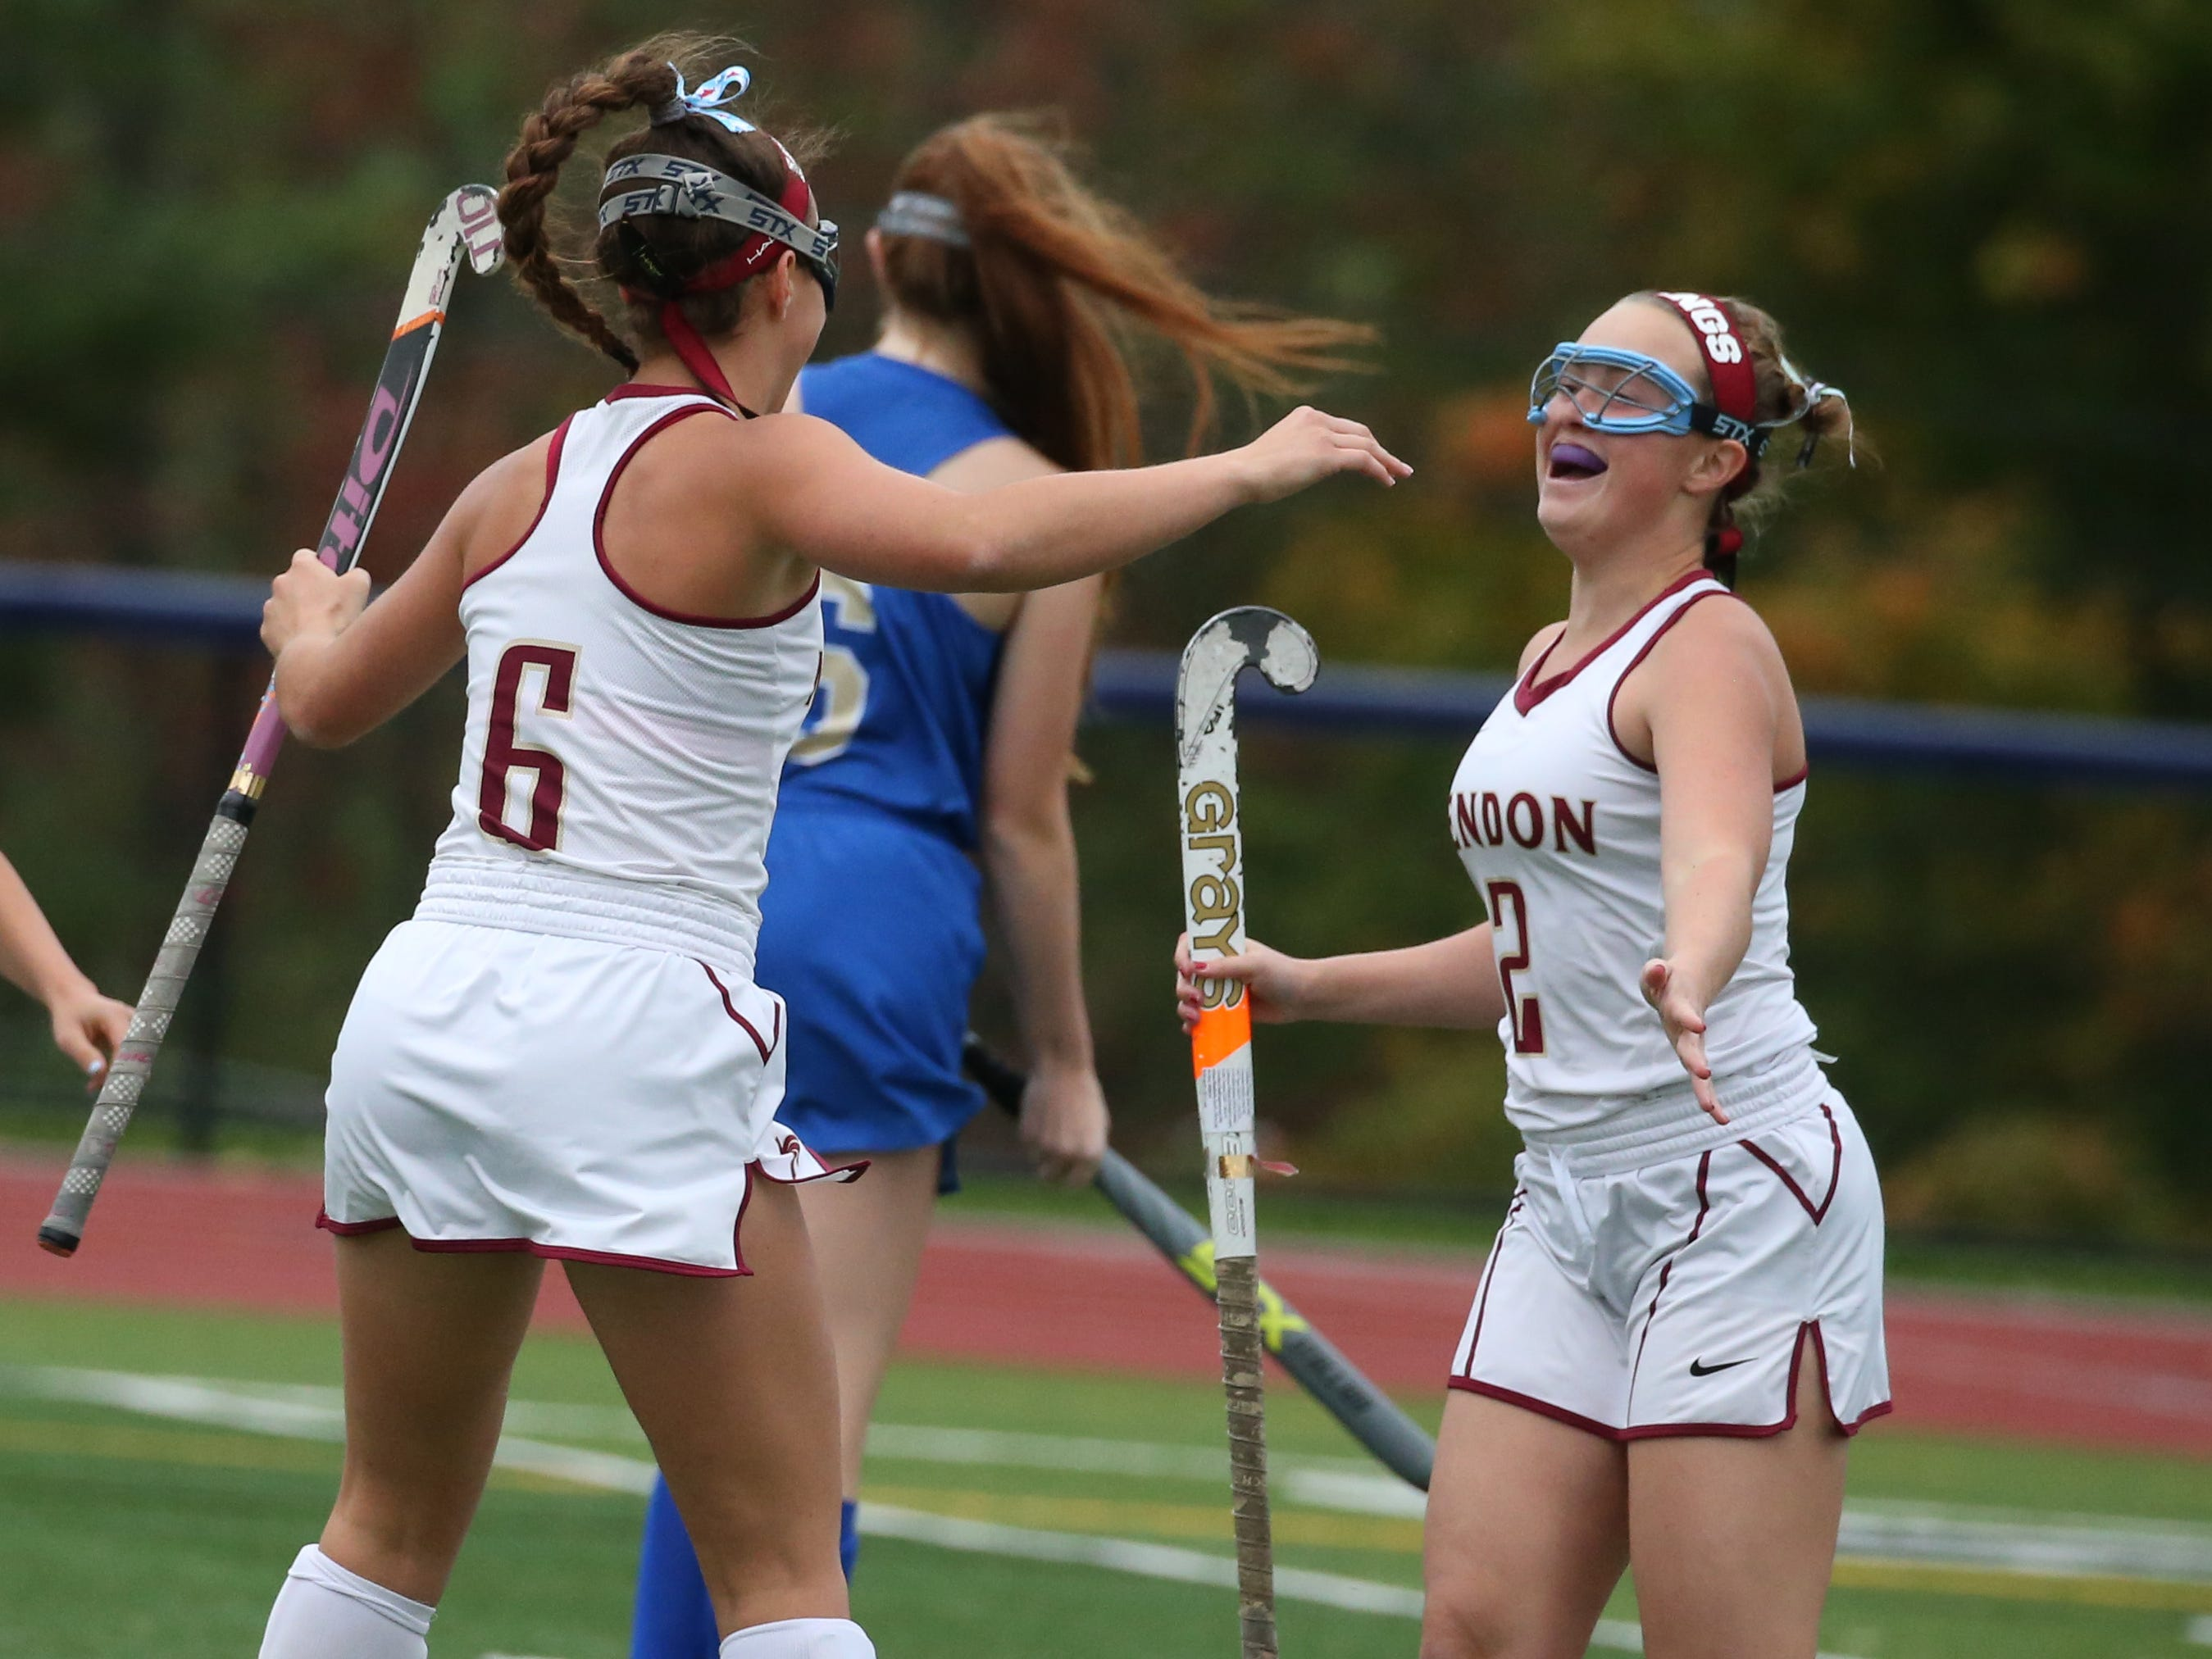 Mendon's Kyra Lucey, left, celebrates her first goal of the game with teammate Anya Lucey, right.